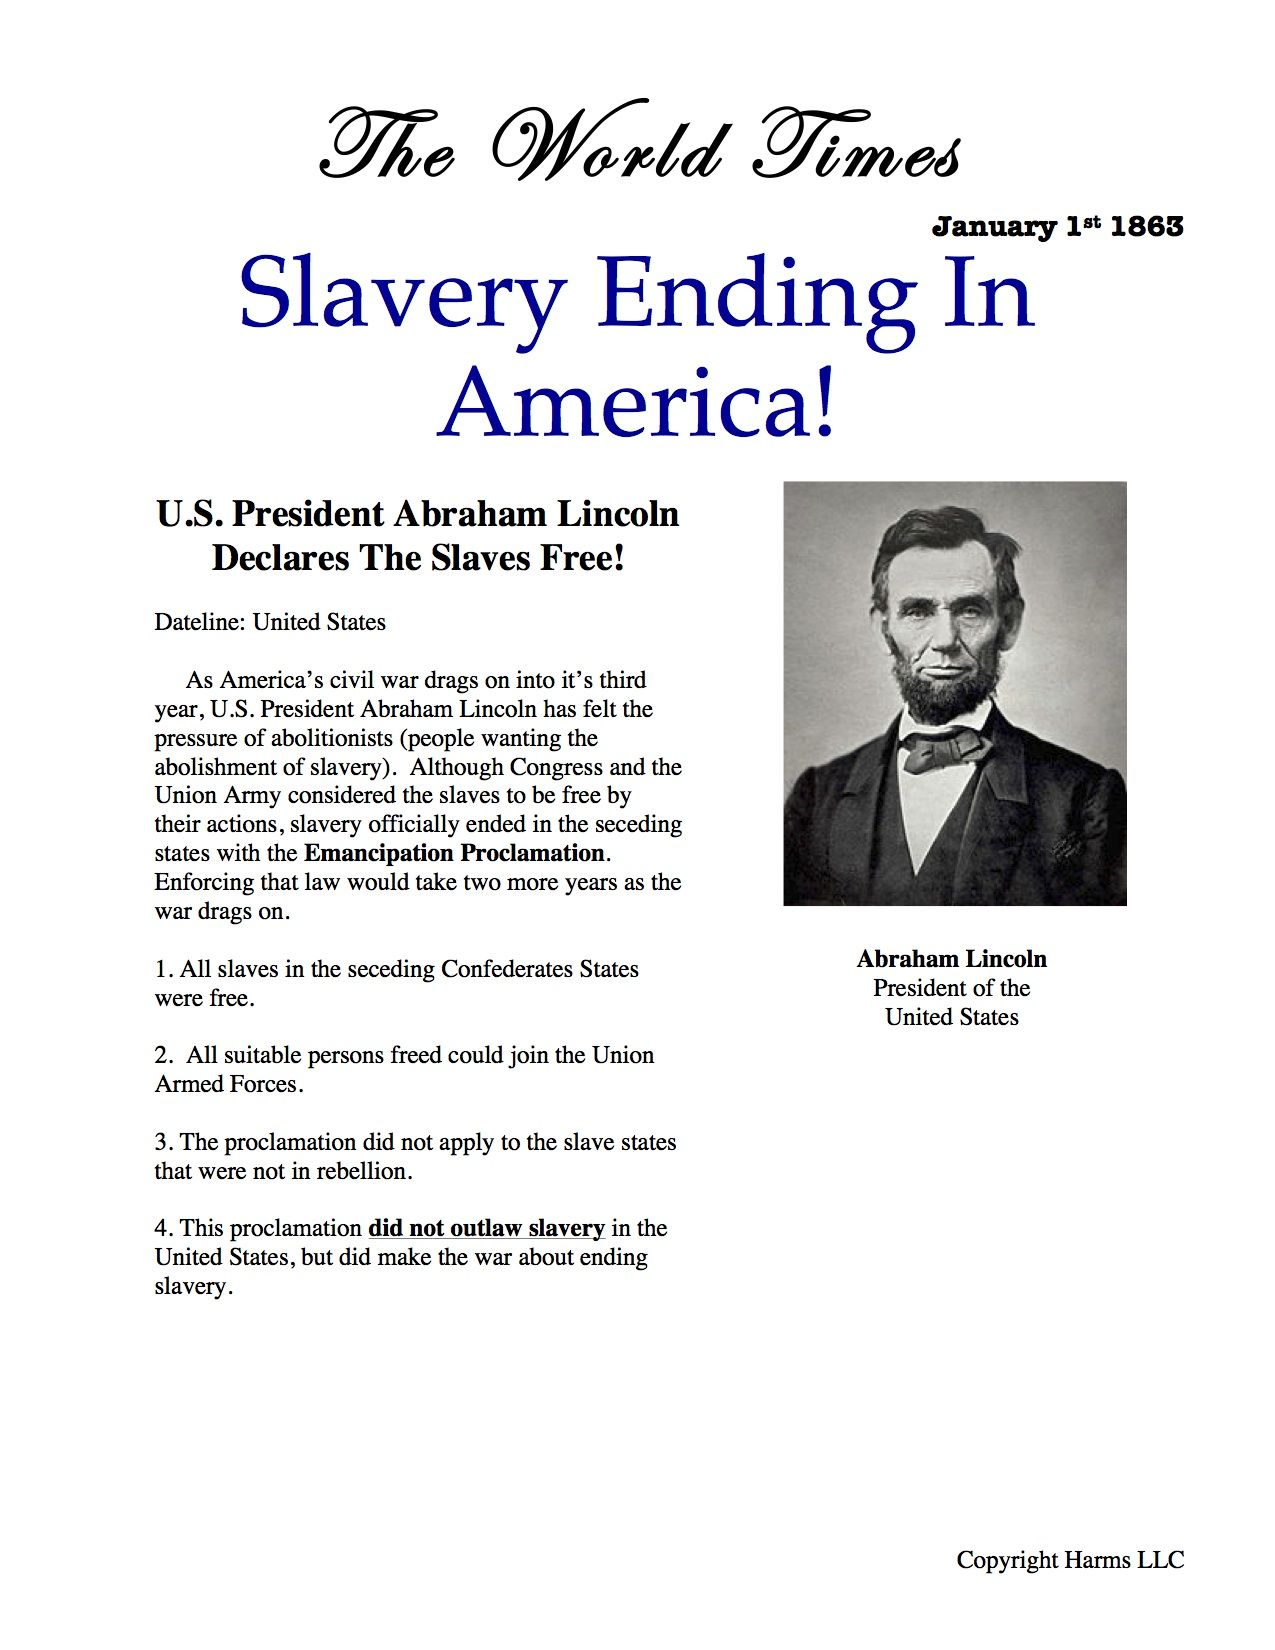 lincoln and emancipation dbq President lincoln claimed to be fighting to restore the union both sides began to mobilize men and supplies to the battlefield by the summer of 1861 in 1862, lincoln adopted the radical republican position that emancipation was a military necessity.